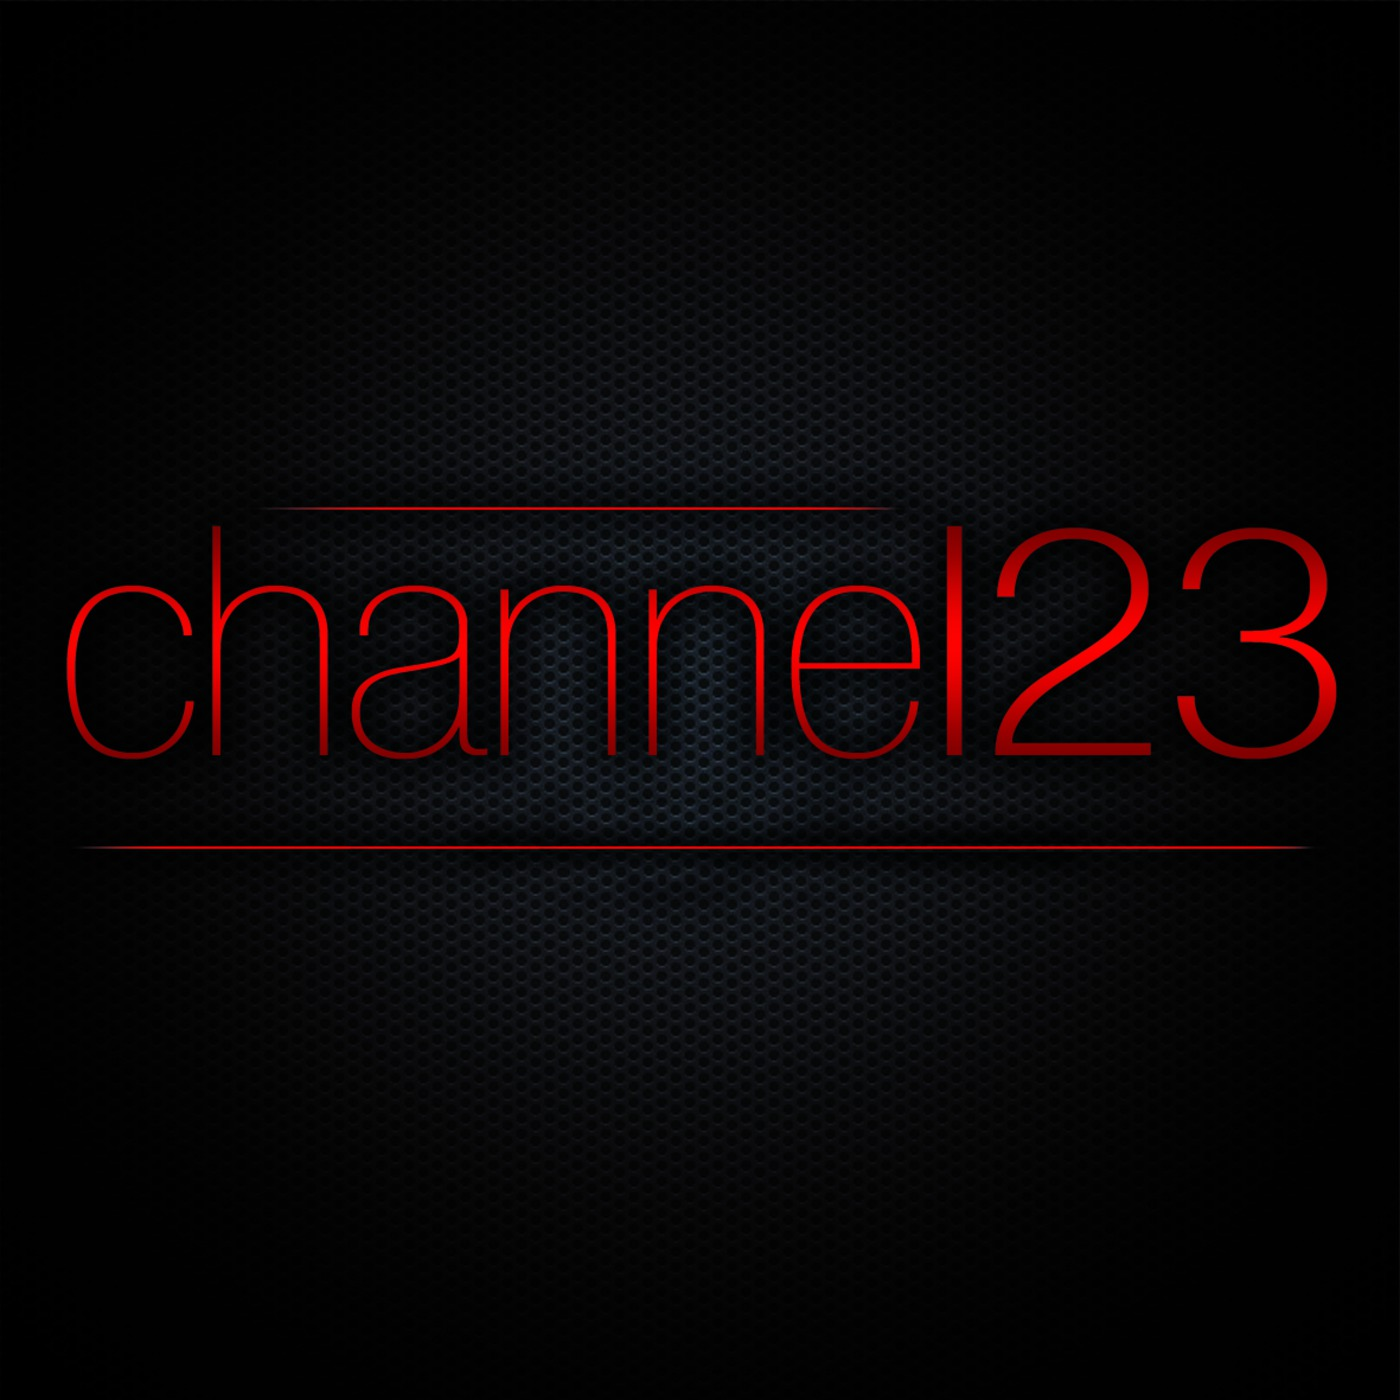 Channel23